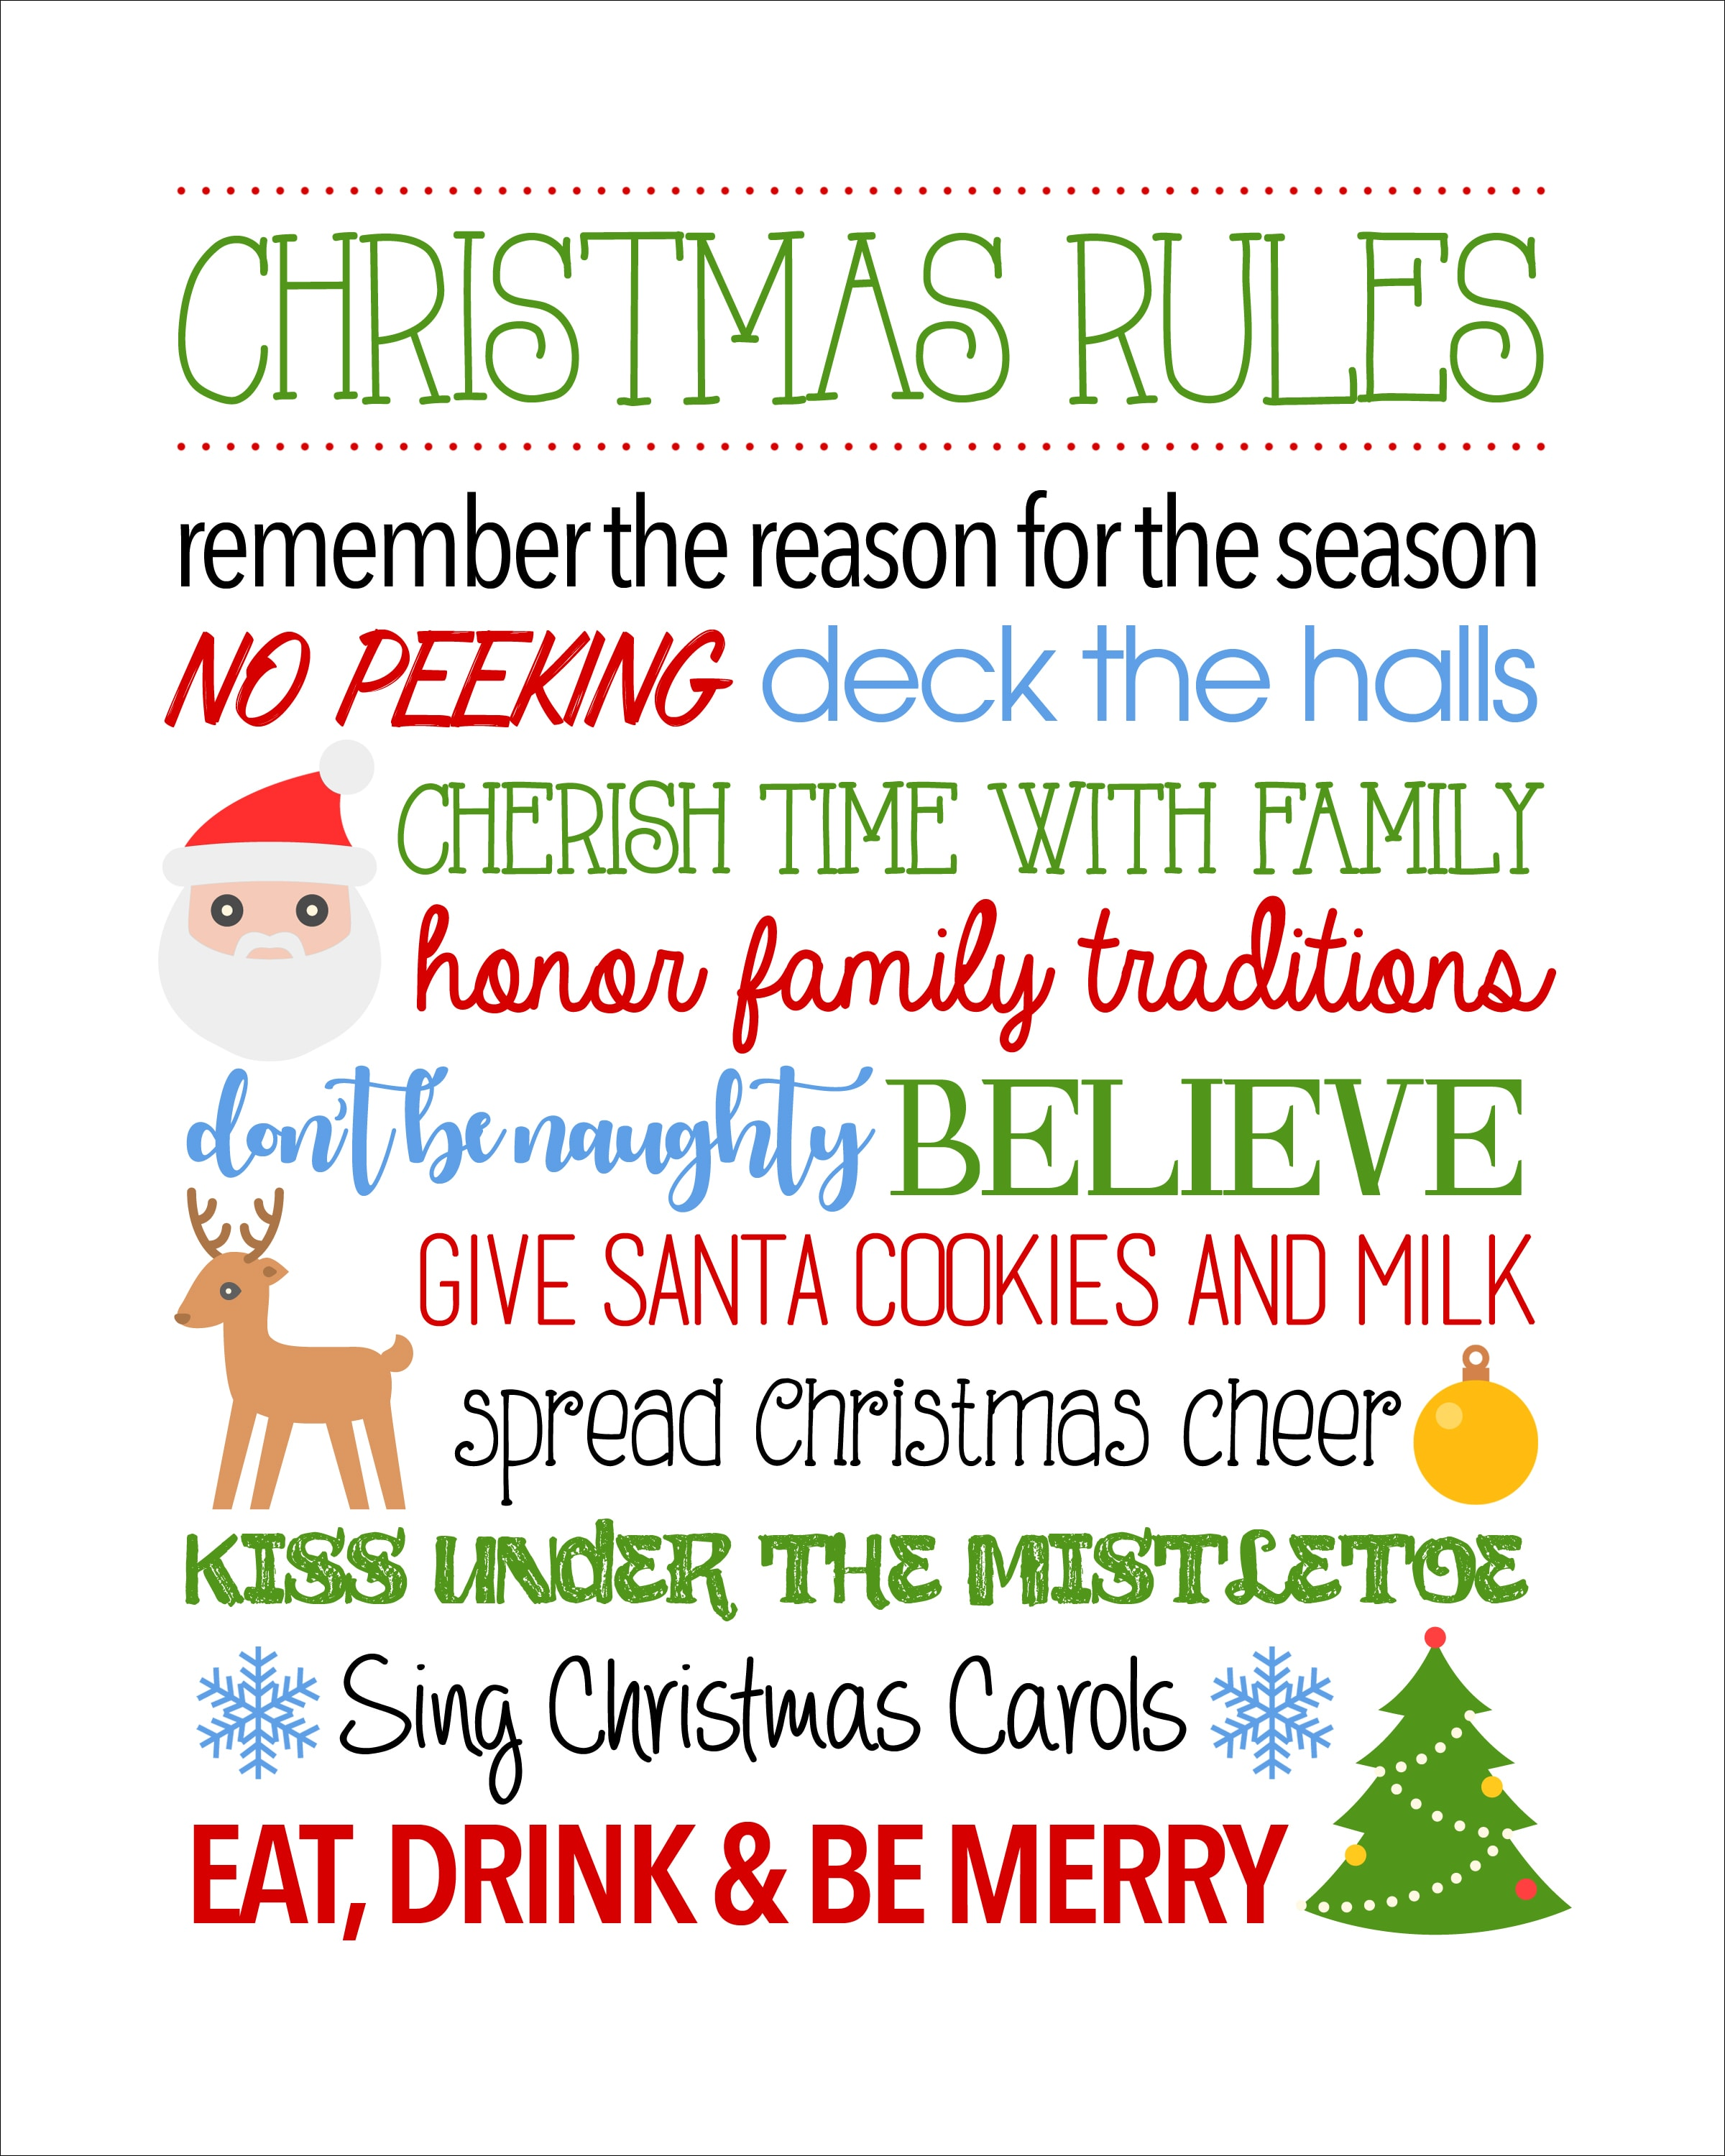 Christmas rules free printable